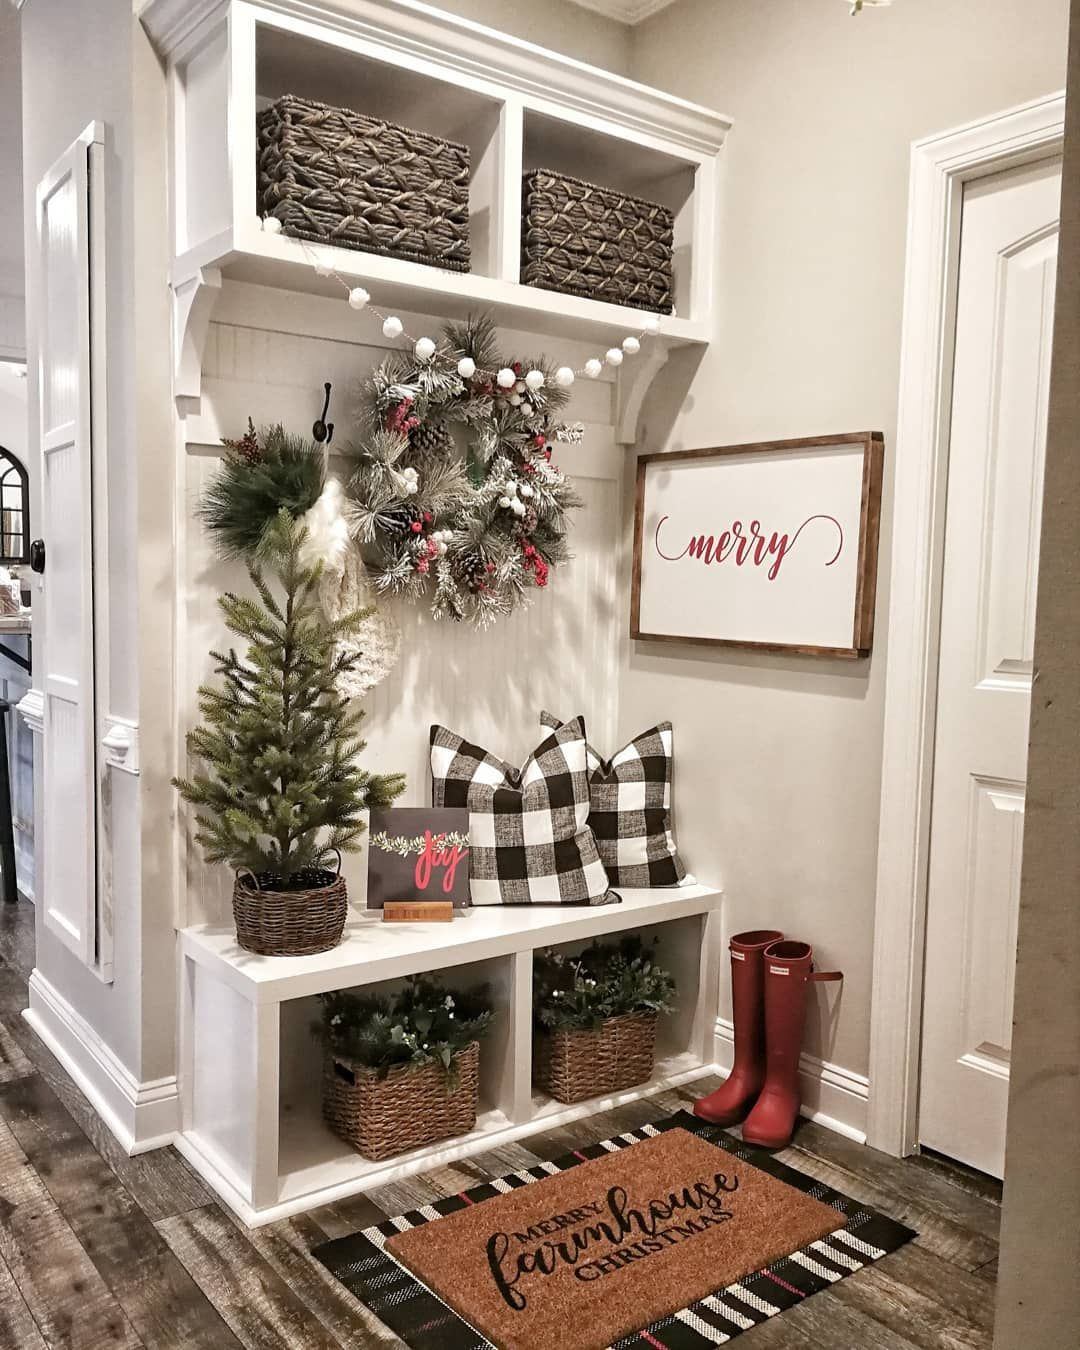 Tamara salvetti on instagram  care you ready for santa  think also beautiful rustic entryway decor ideas the home pinterest rh